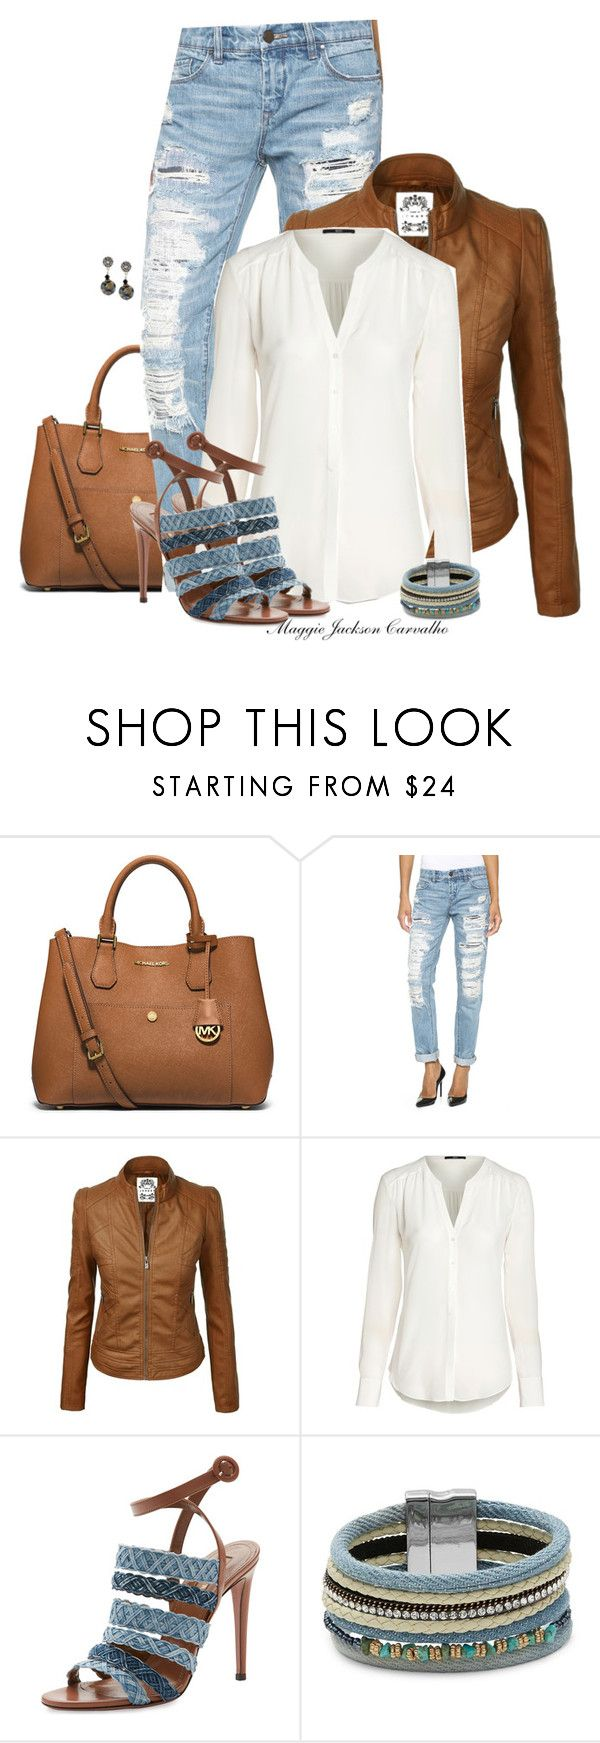 """""""Denim Sandals"""" by maggie-jackson-carvalho ❤ liked on Polyvore featuring MICHAEL Michael Kors, Blank Denim, Aquazzura and Design Lab"""